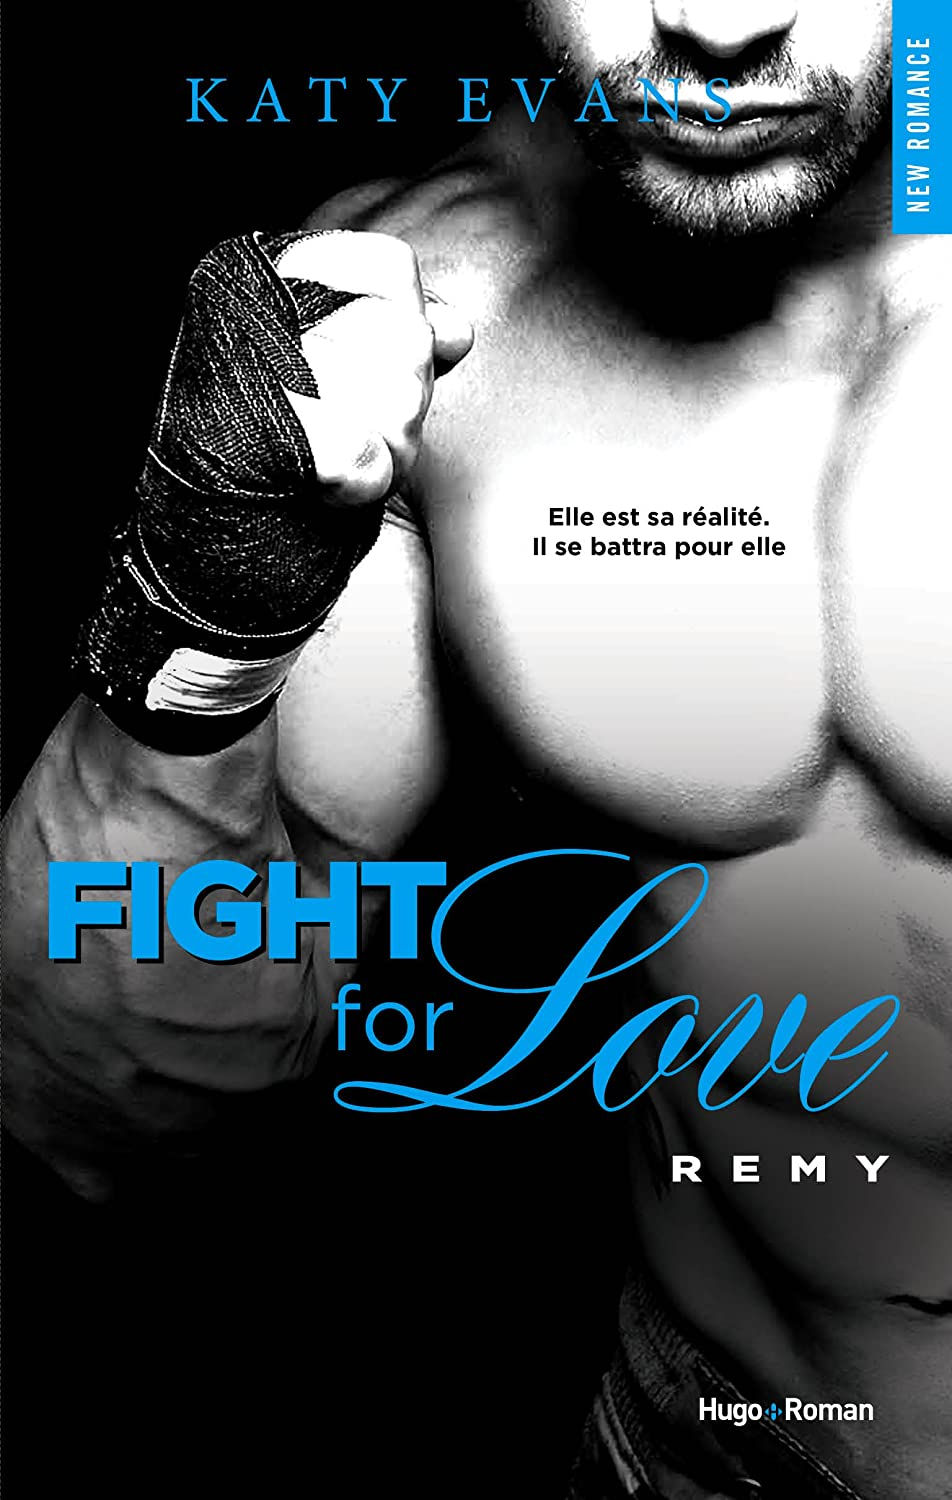 Fight for love, Tome 3 : Remy 81mSBwoE7tL._SL1500_